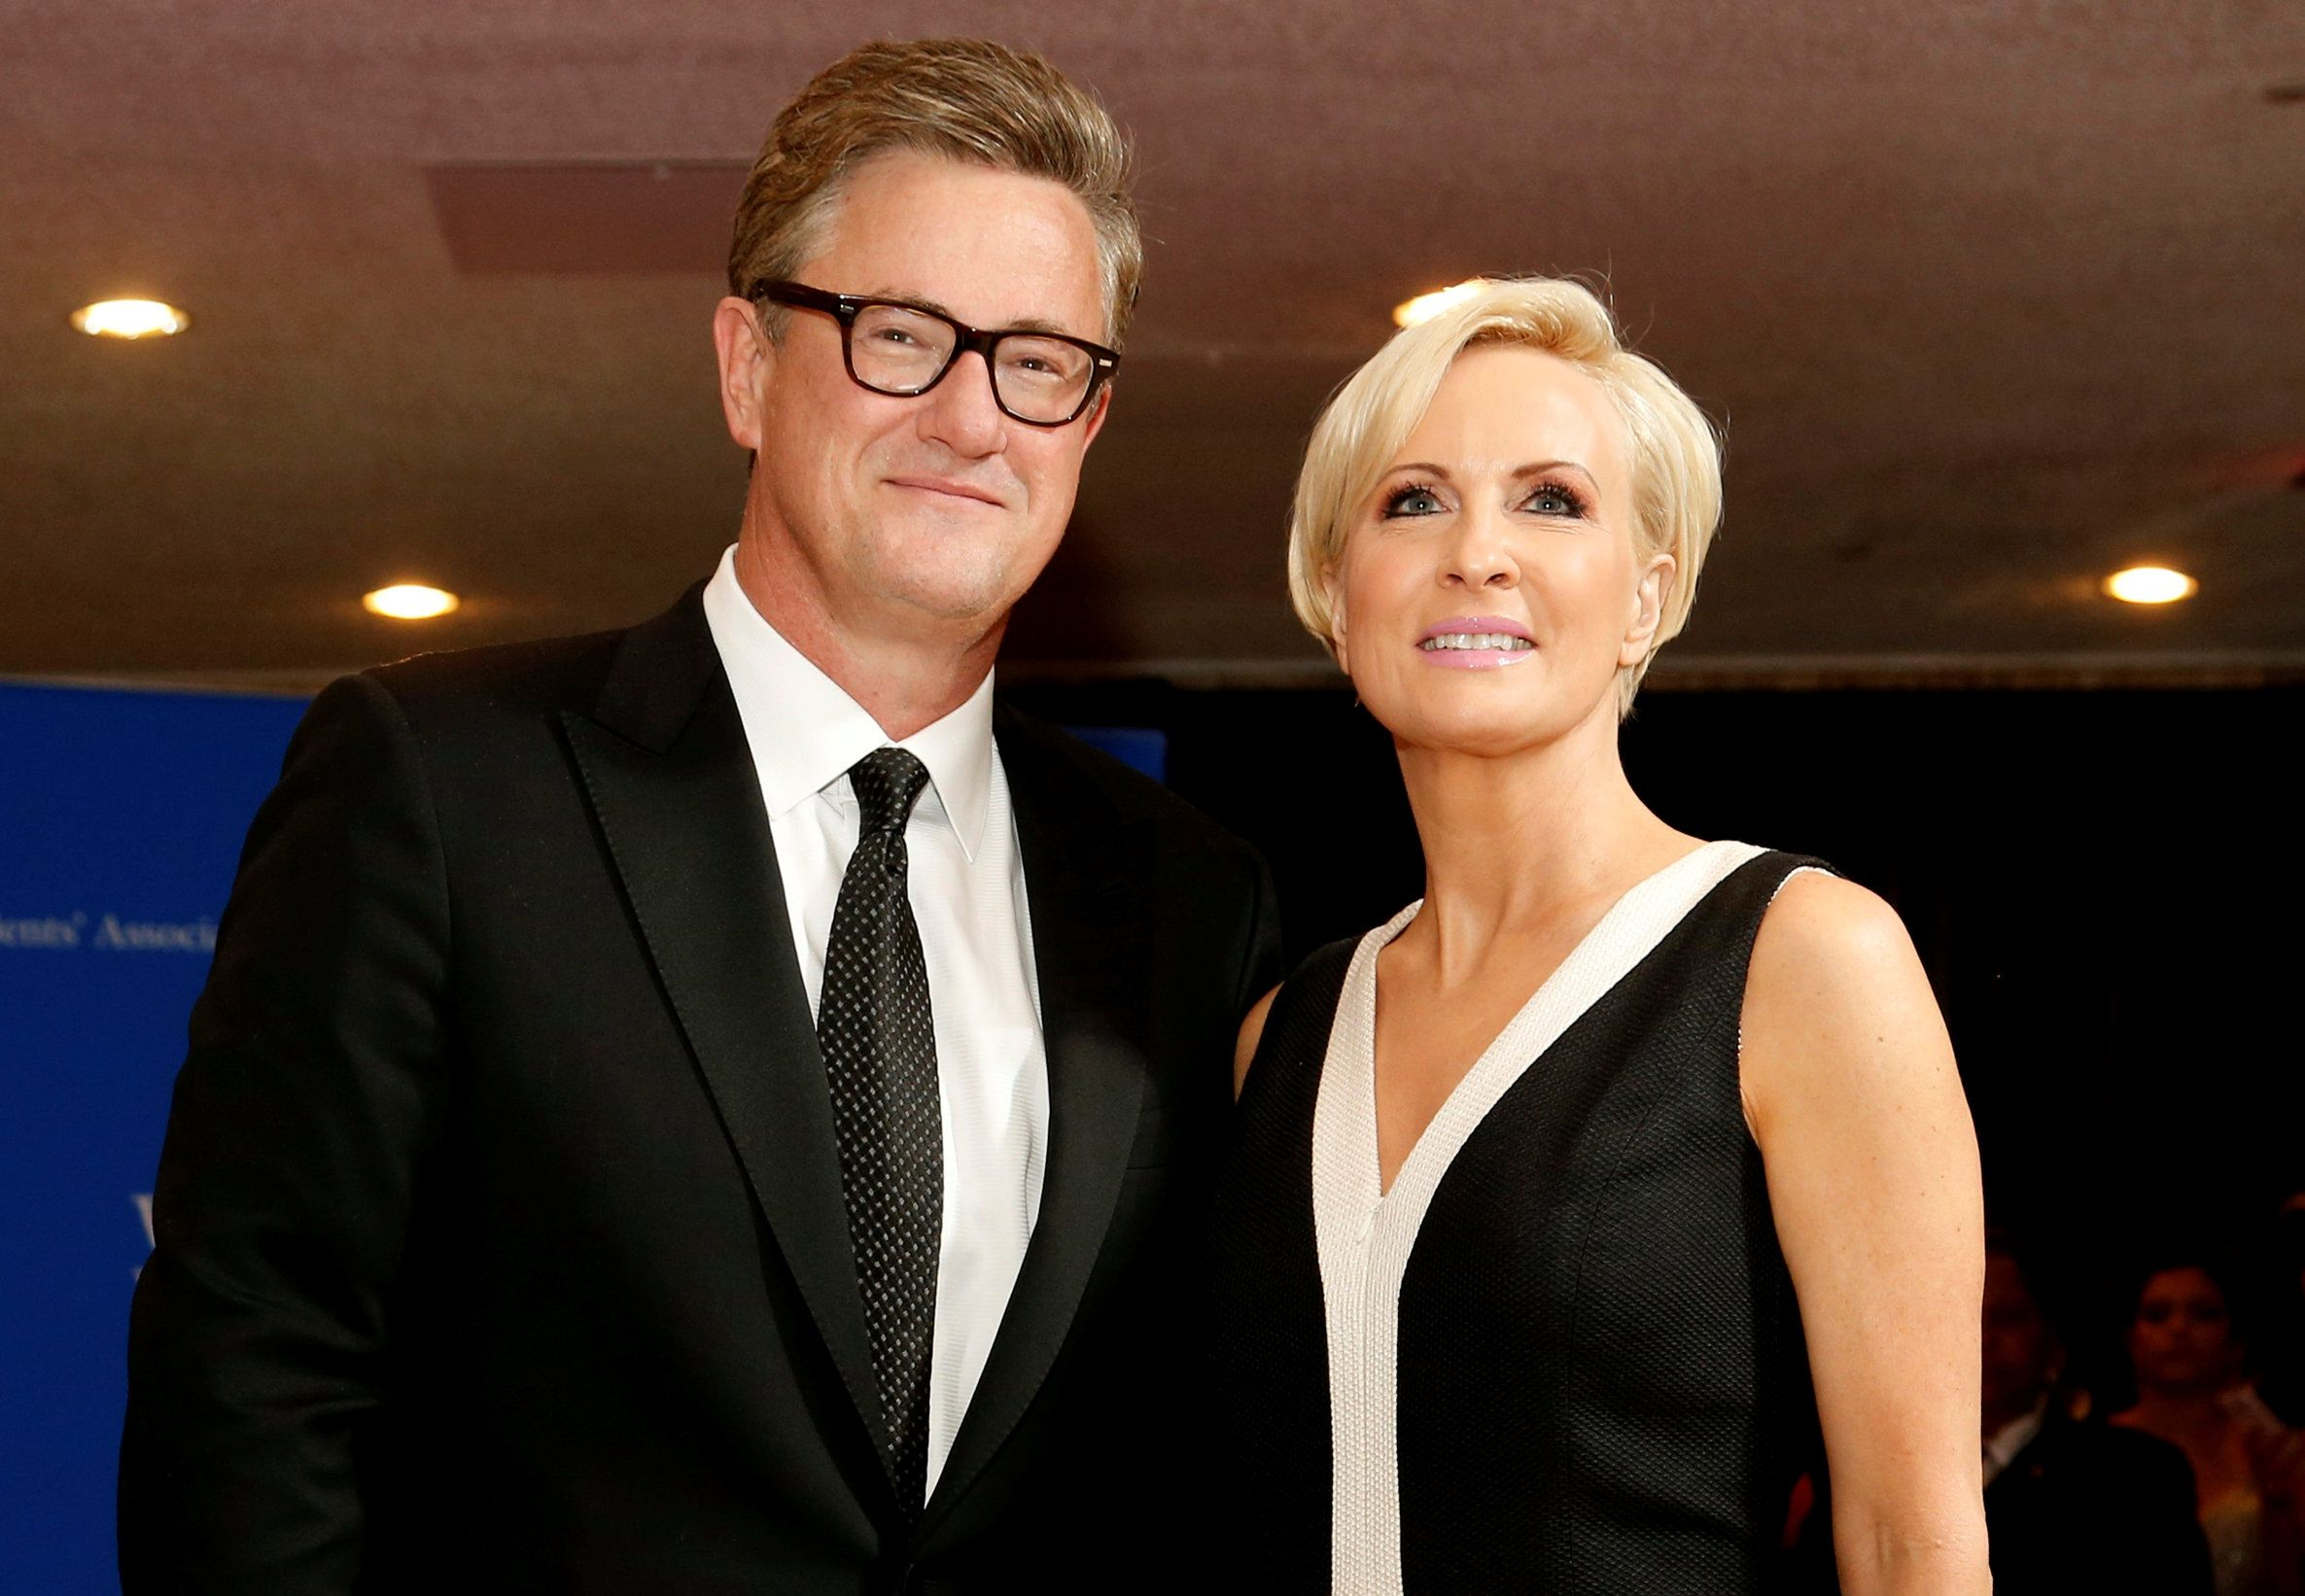 Joe Scarborough, Mika Brzezinski